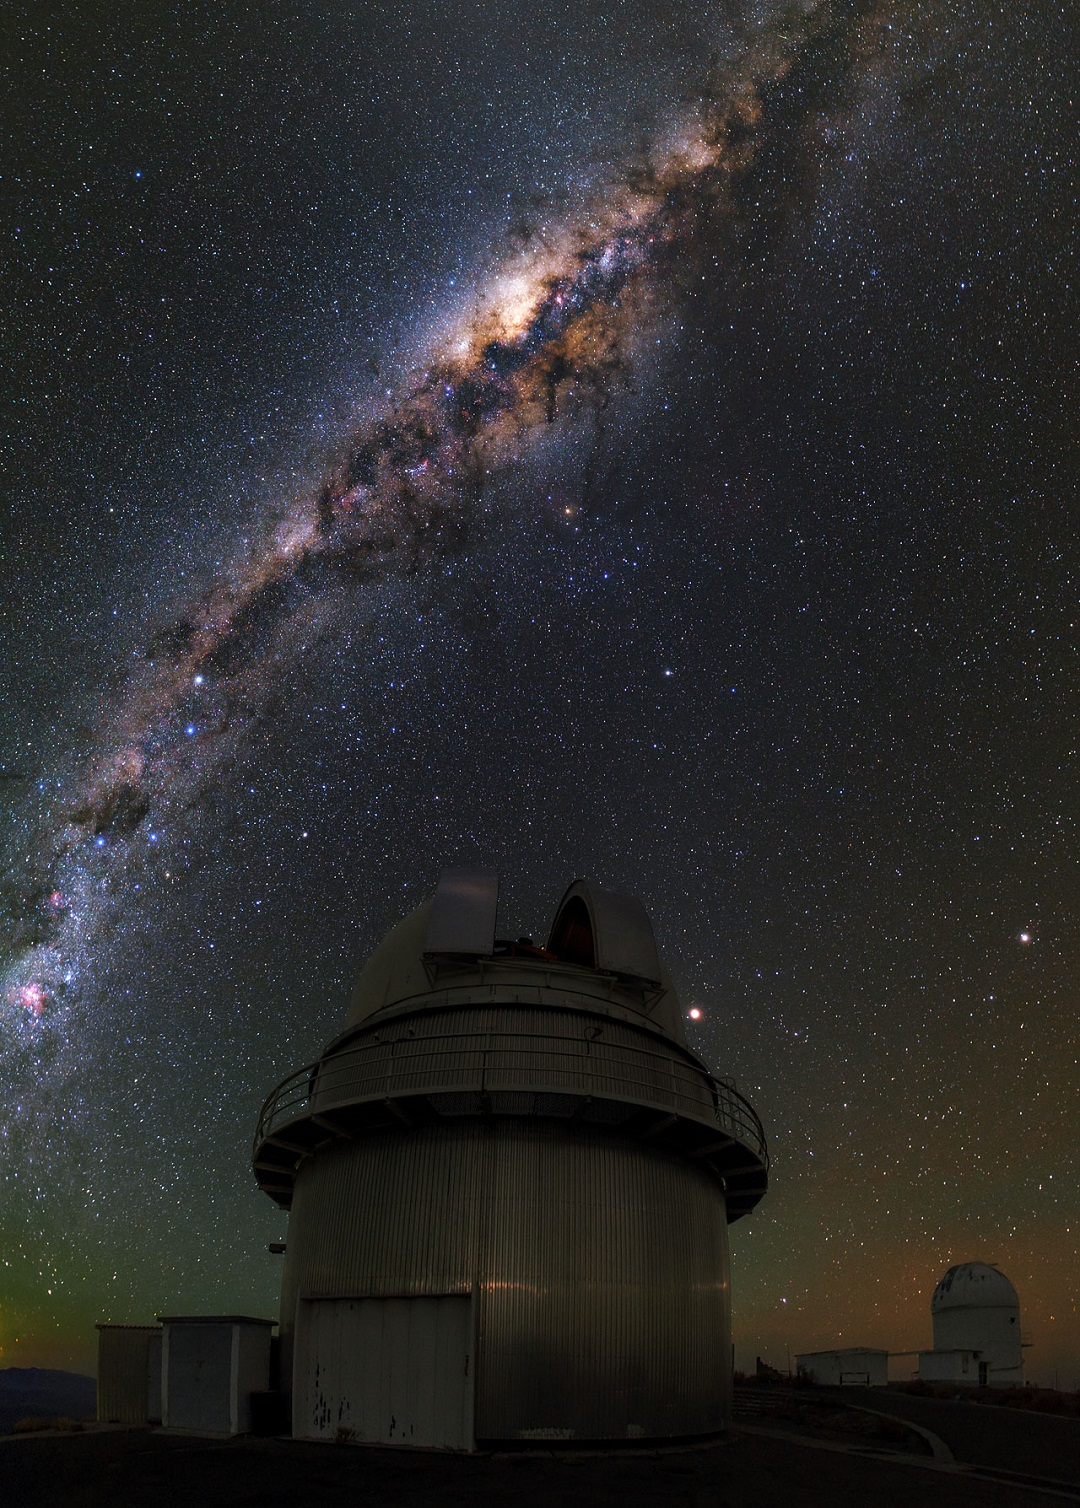 http://www.eso.org/public/archives/images/large/potw1512a.jpg